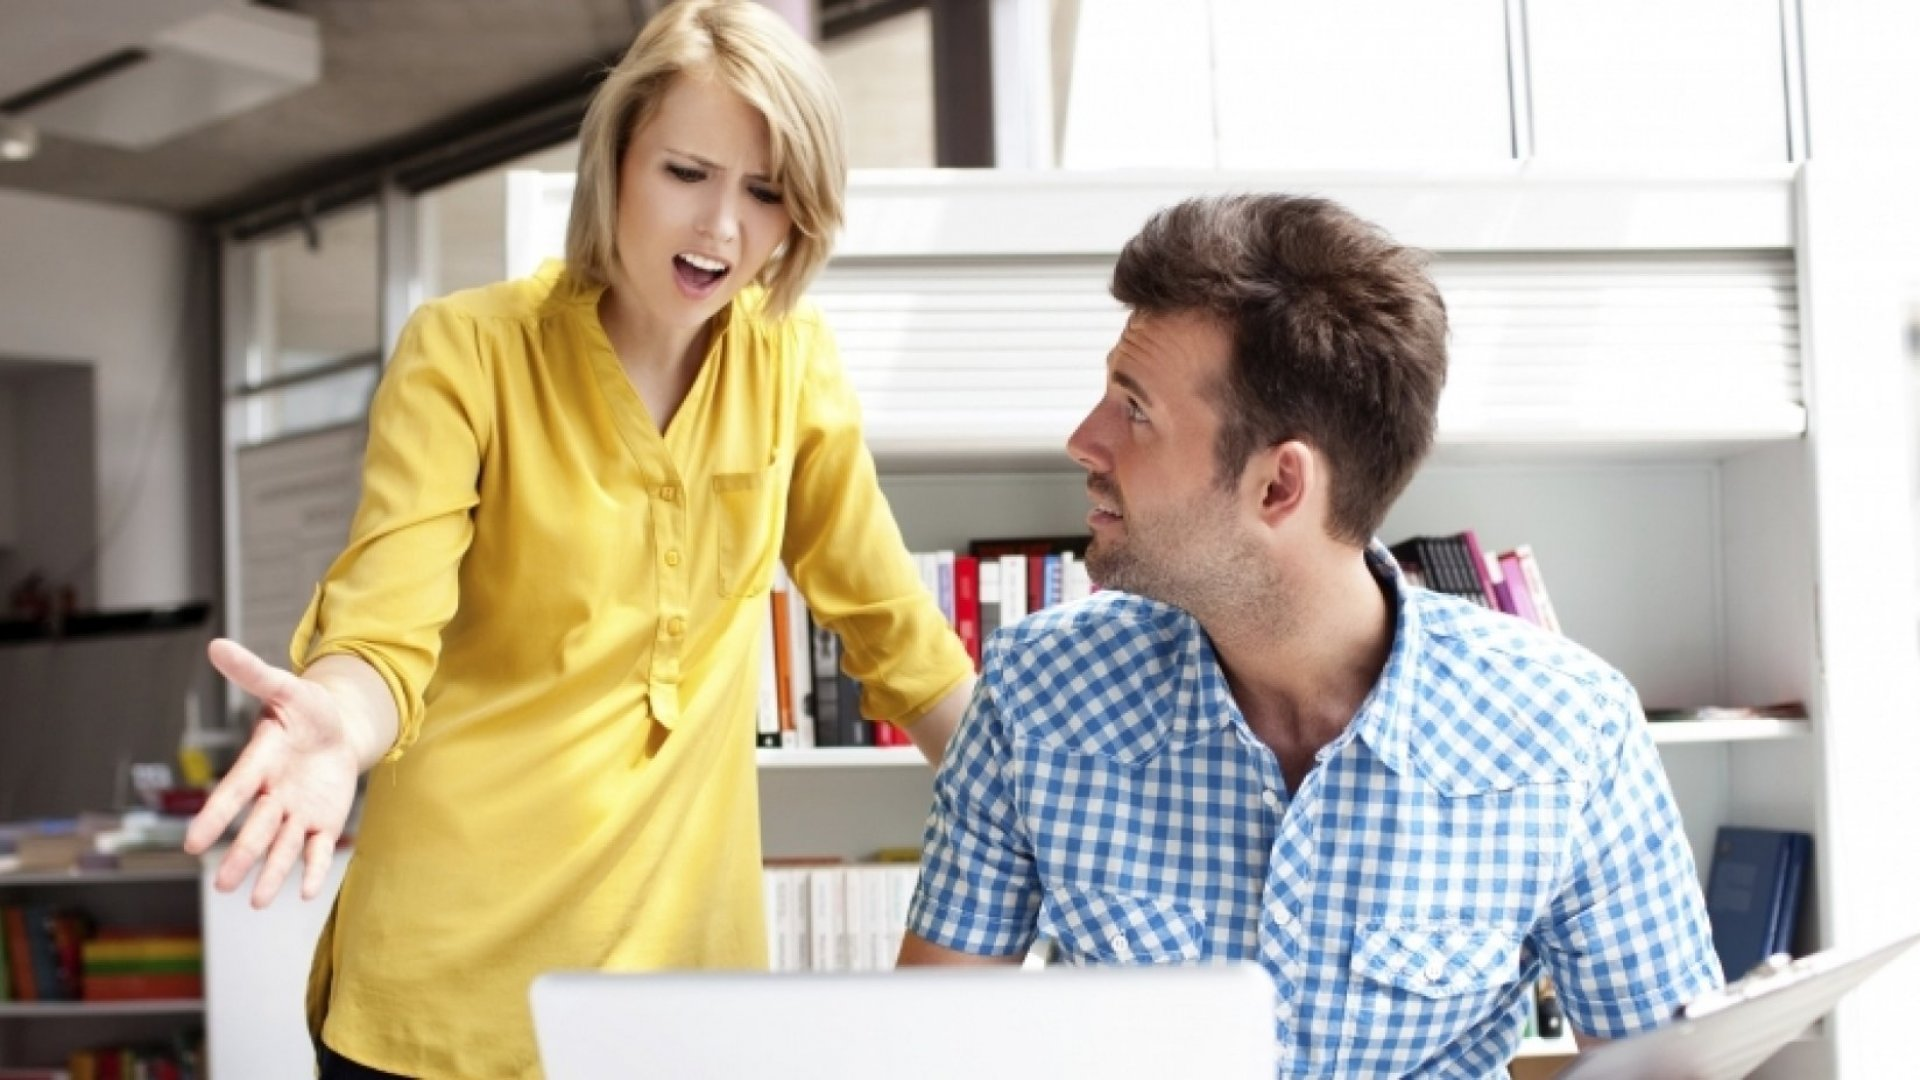 How to Ruin a Business Relationship in 3 Steps